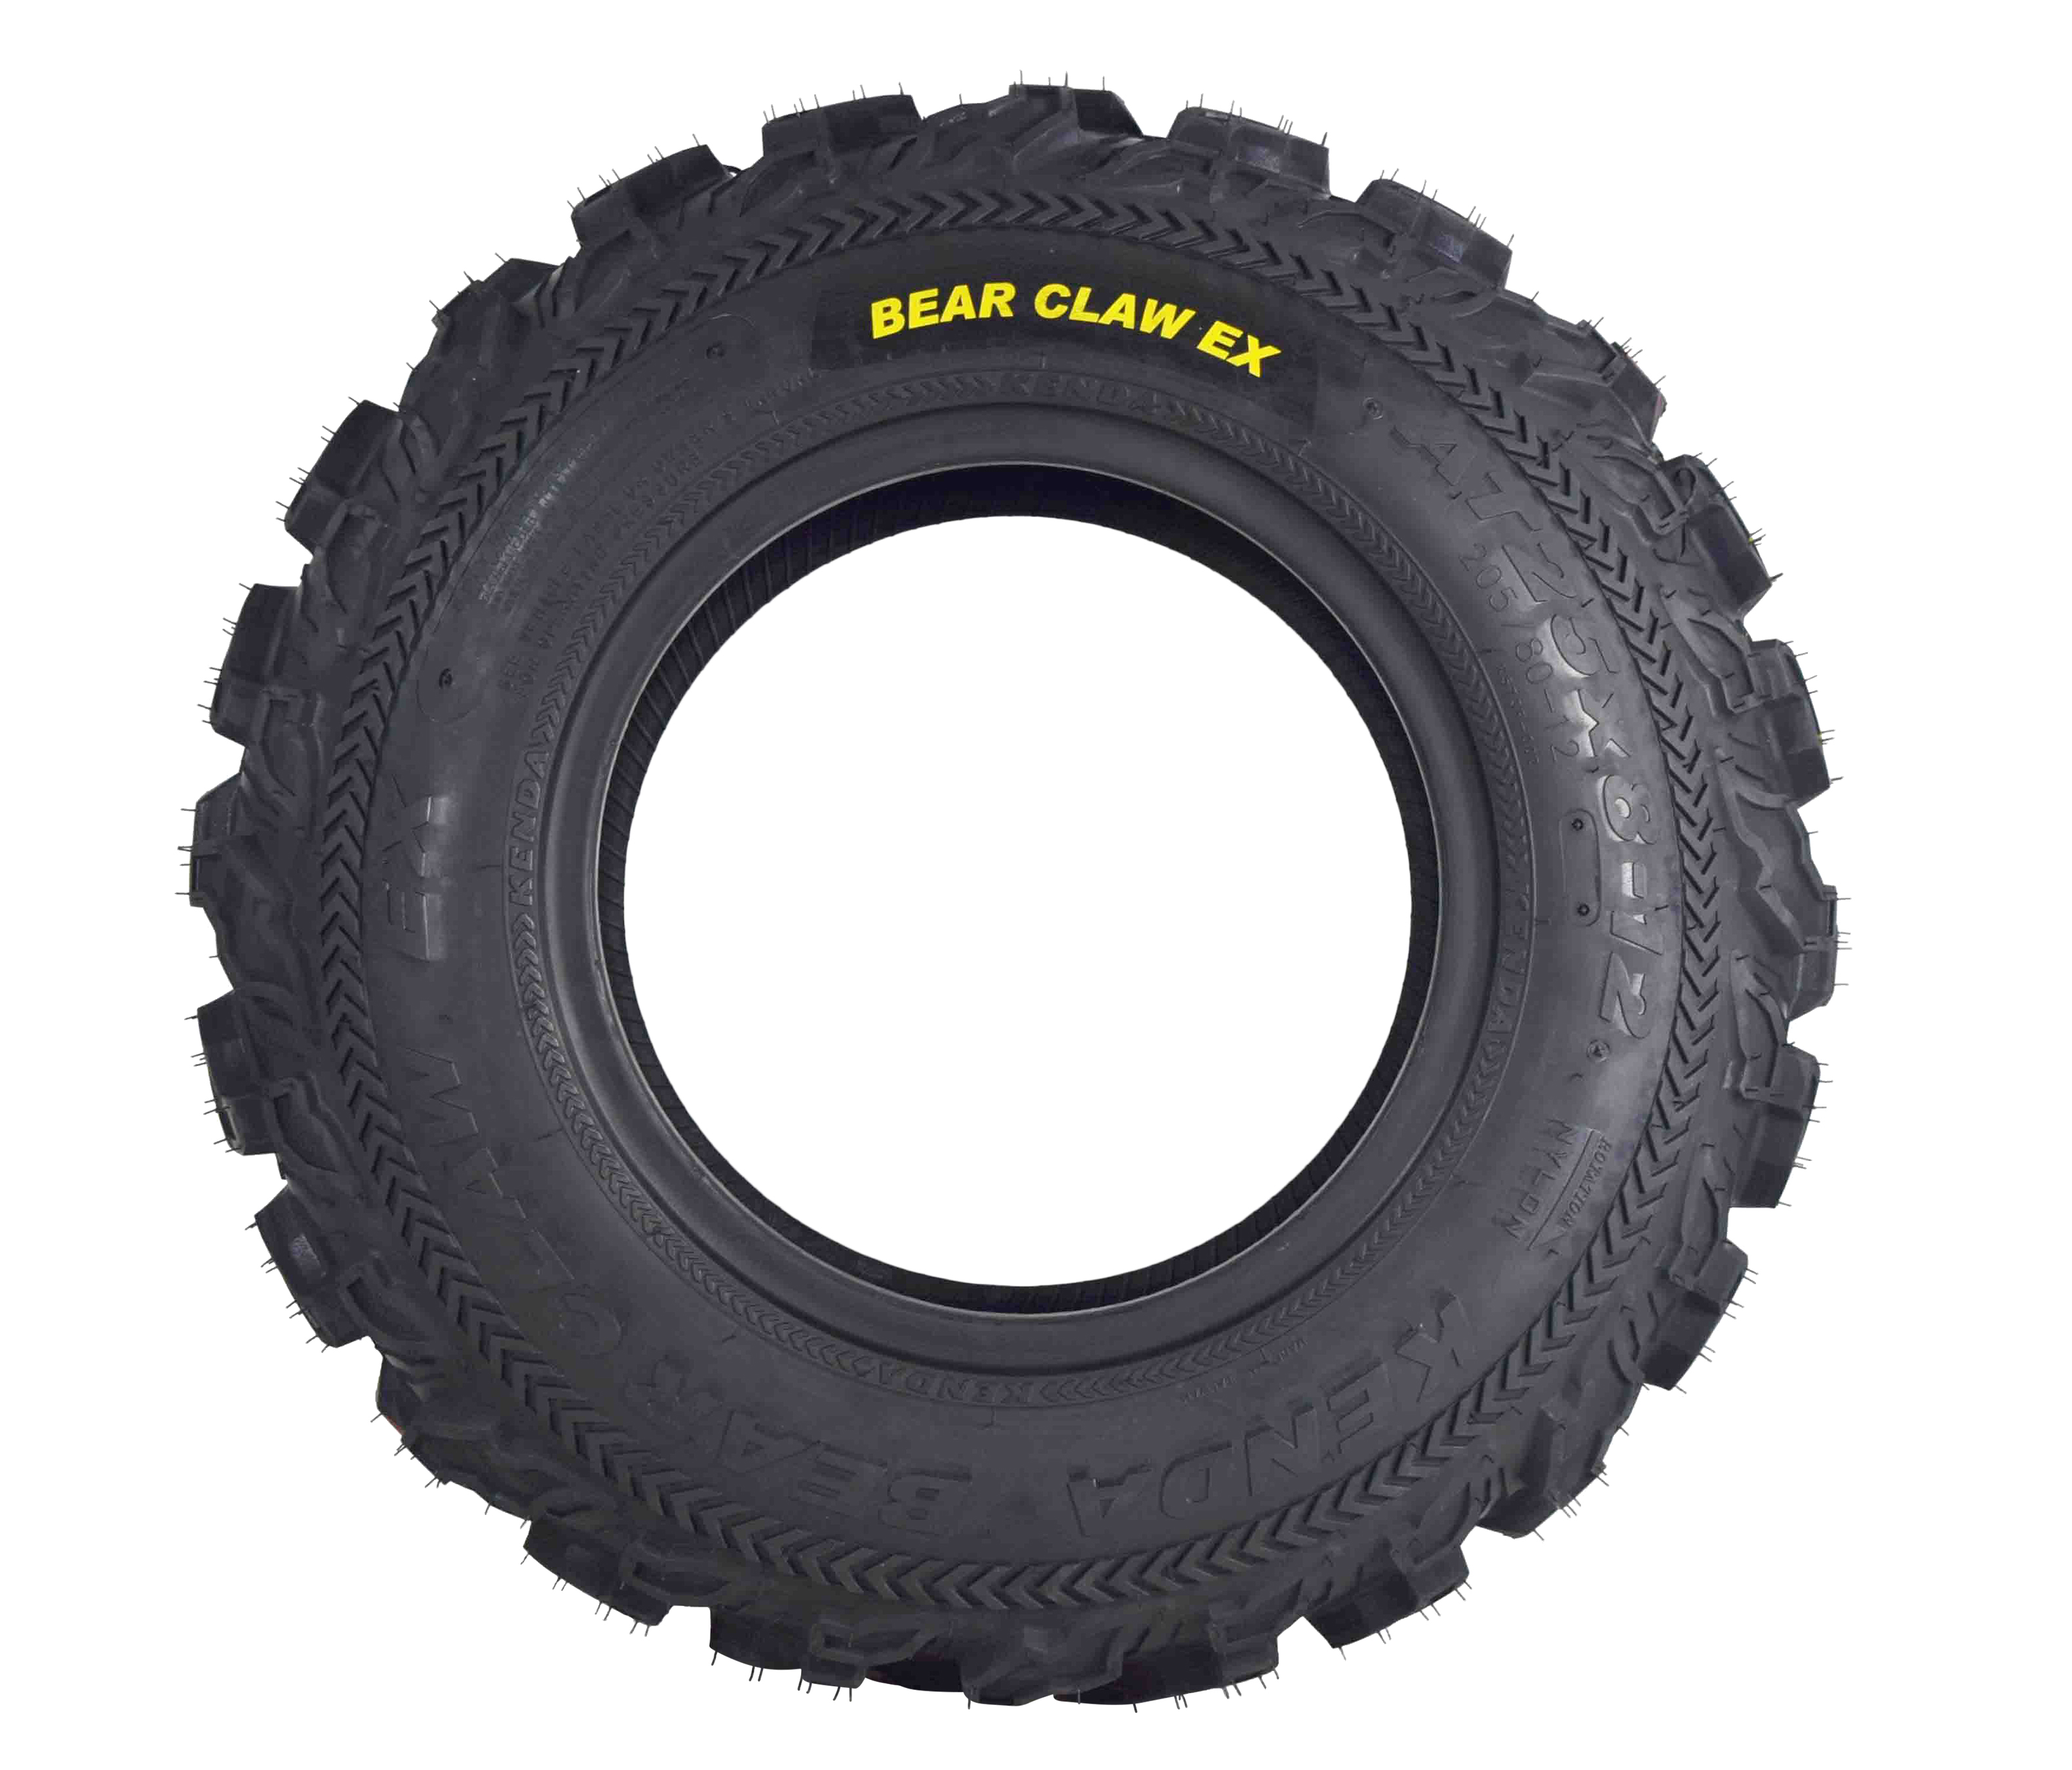 Kenda-Bear-Claw-EX-25x8-12-F-25x11-10-R-ATV-6-PLY-Tires-Bearclaw-4-Pack-Set-image-3